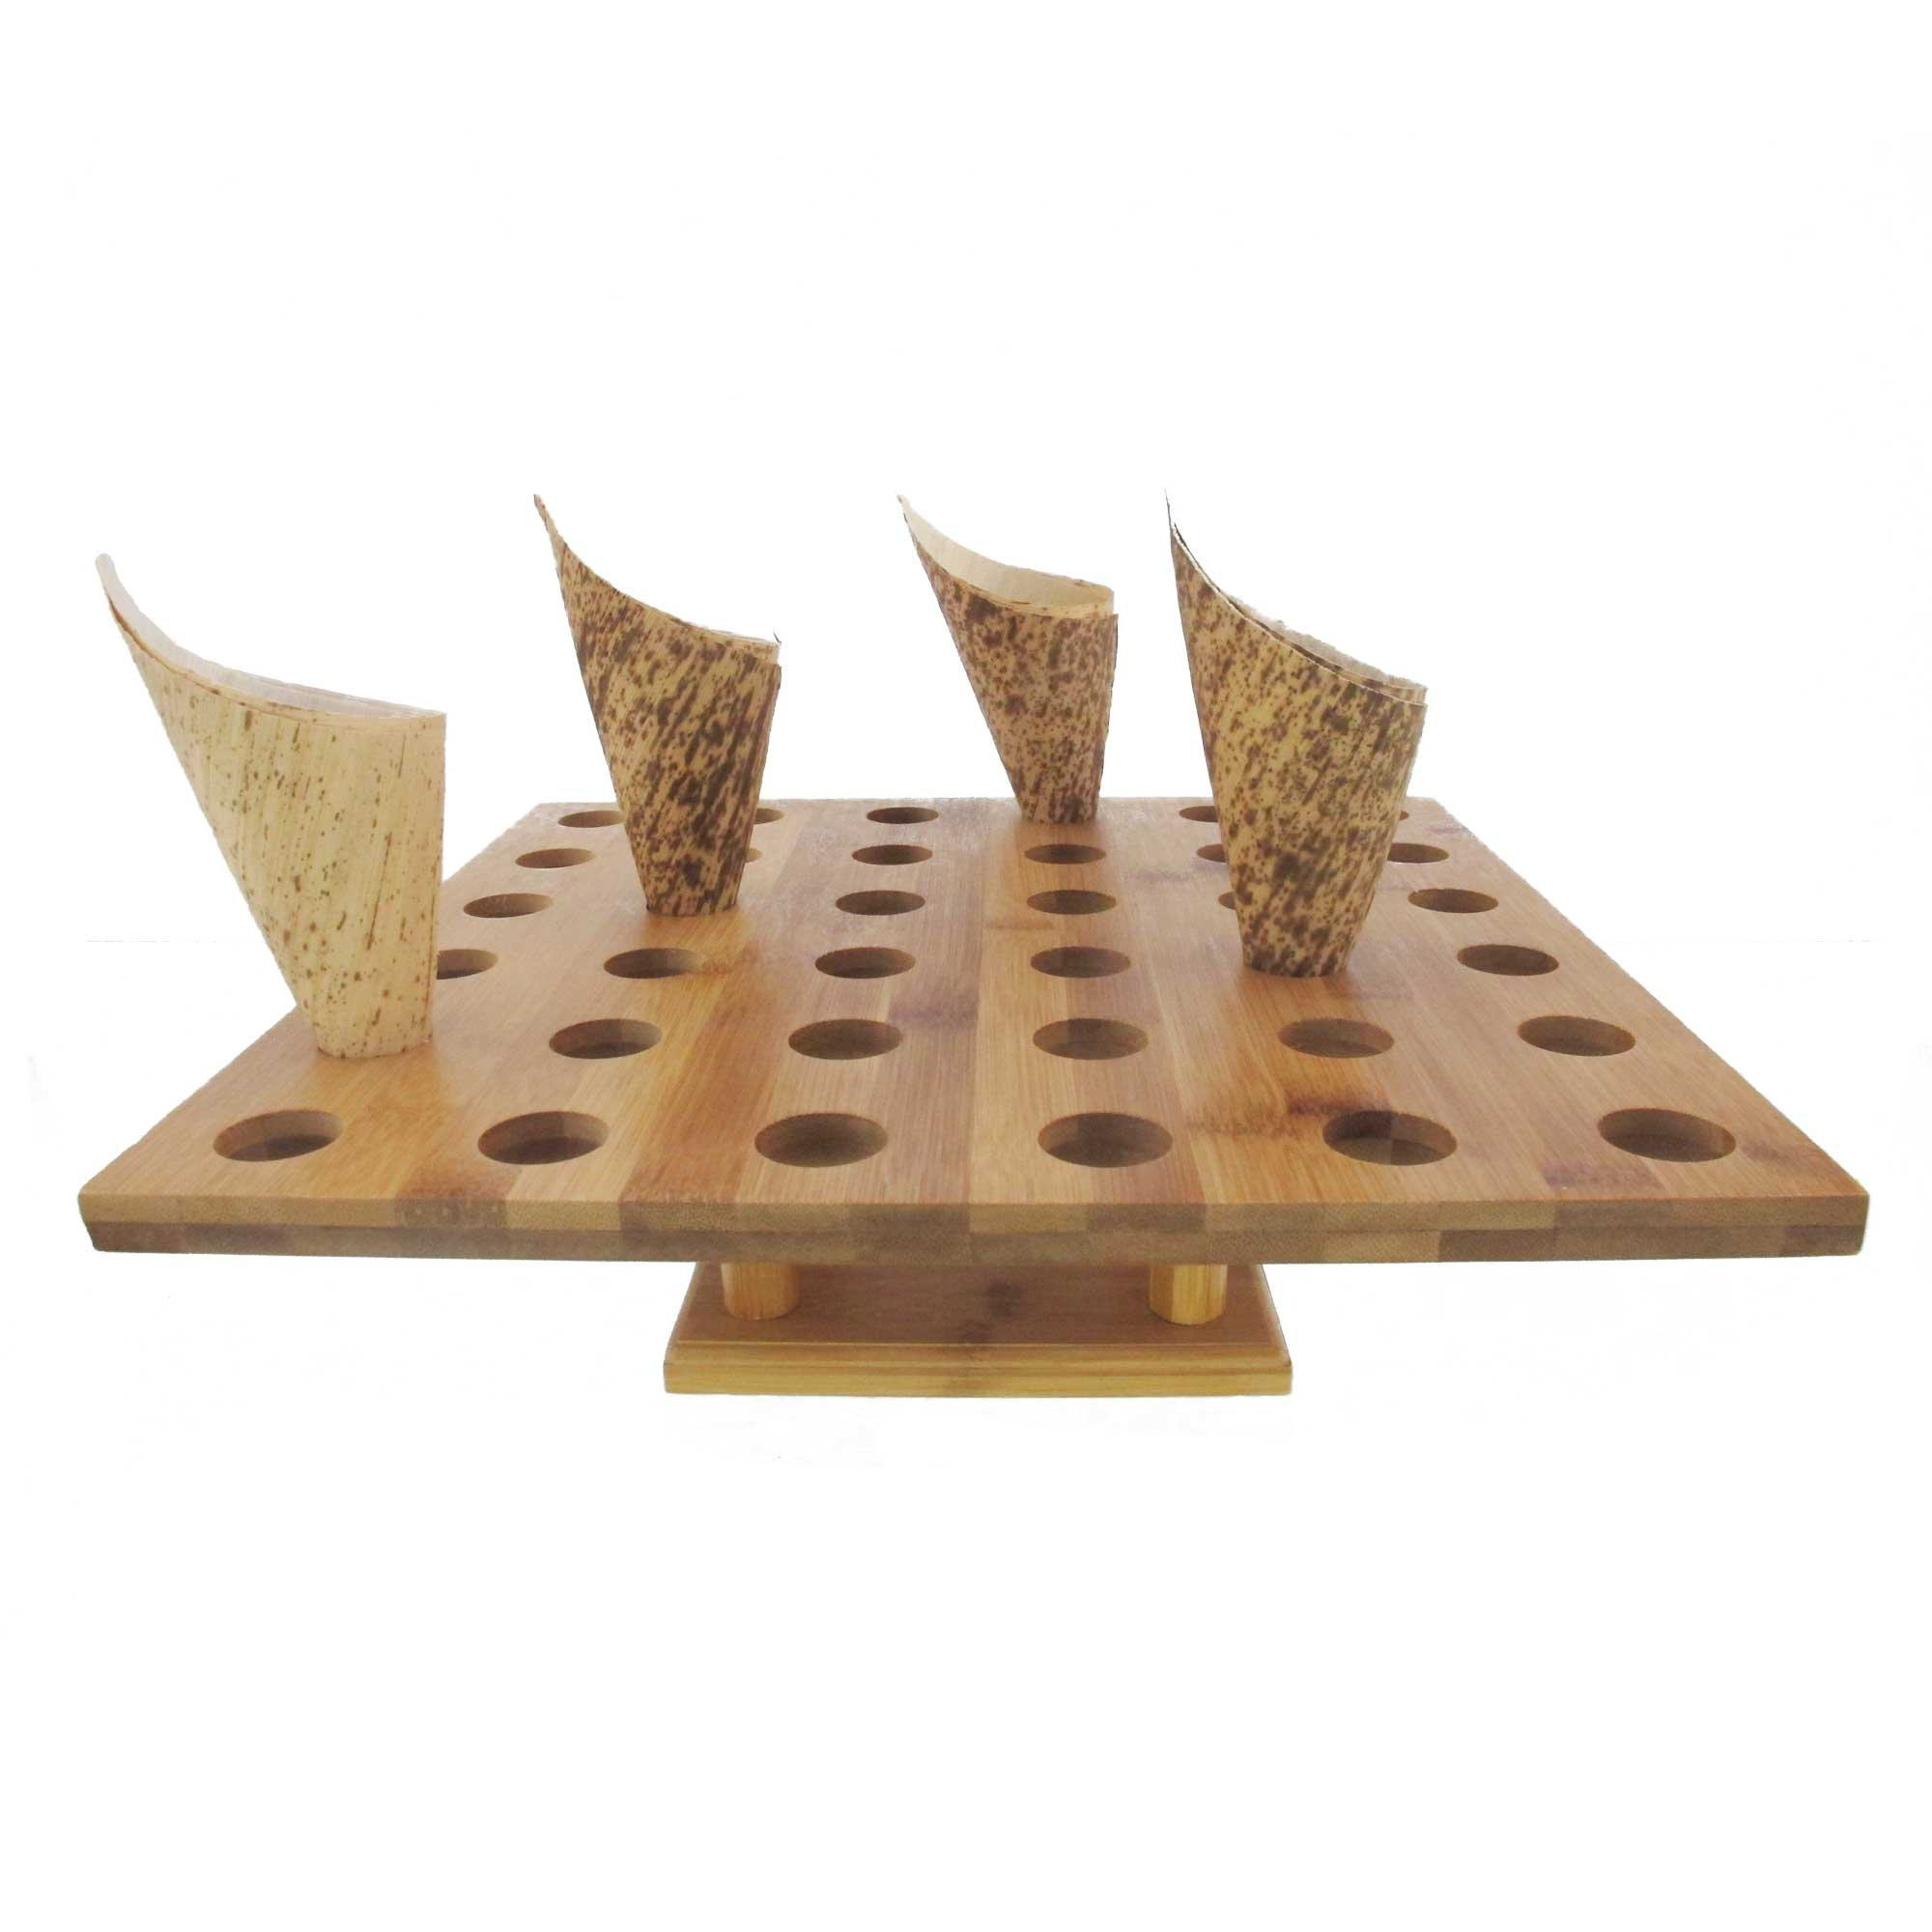 BambooMN 13'' x 13'' Natural Bamboo Square Food Cone Display Tamaki Stand for Restaurants, Catered Events, Party or Buffets, Holds up to 36 Cones - 3 Pieces